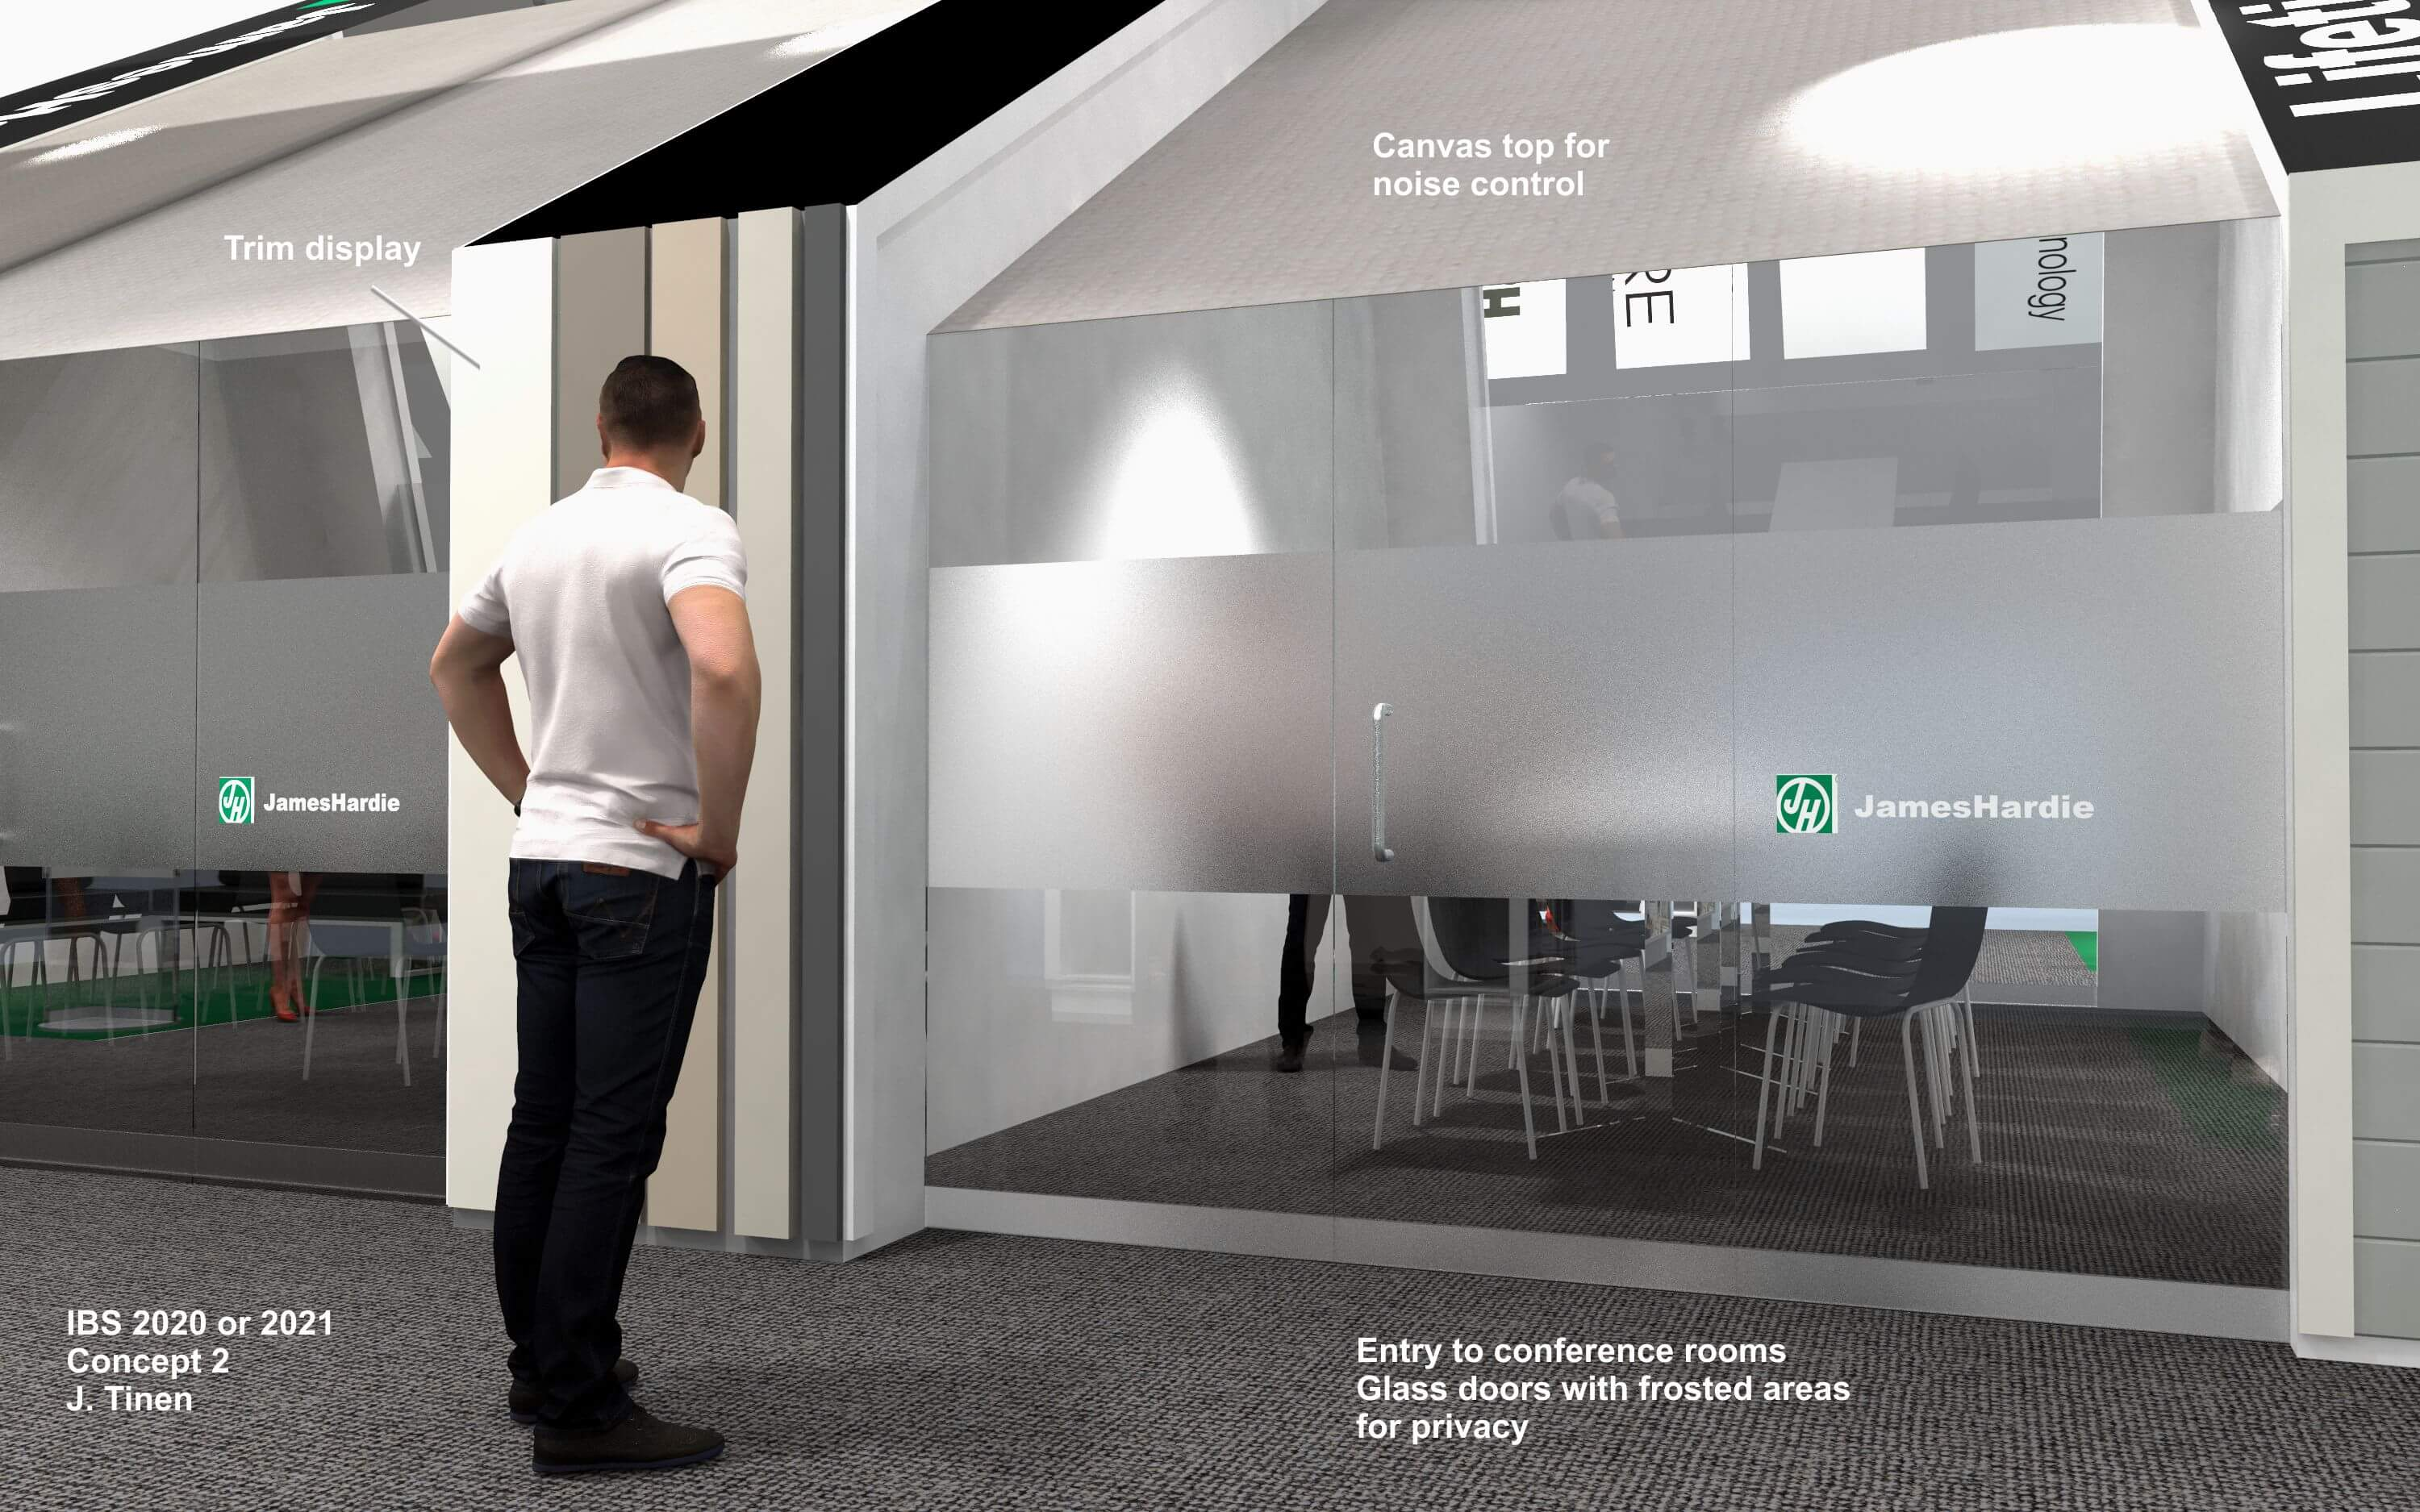 A concept rendering of the entrance to the board room for the James Hardy trade show booth, International Builder's Show (IBS) 2020.